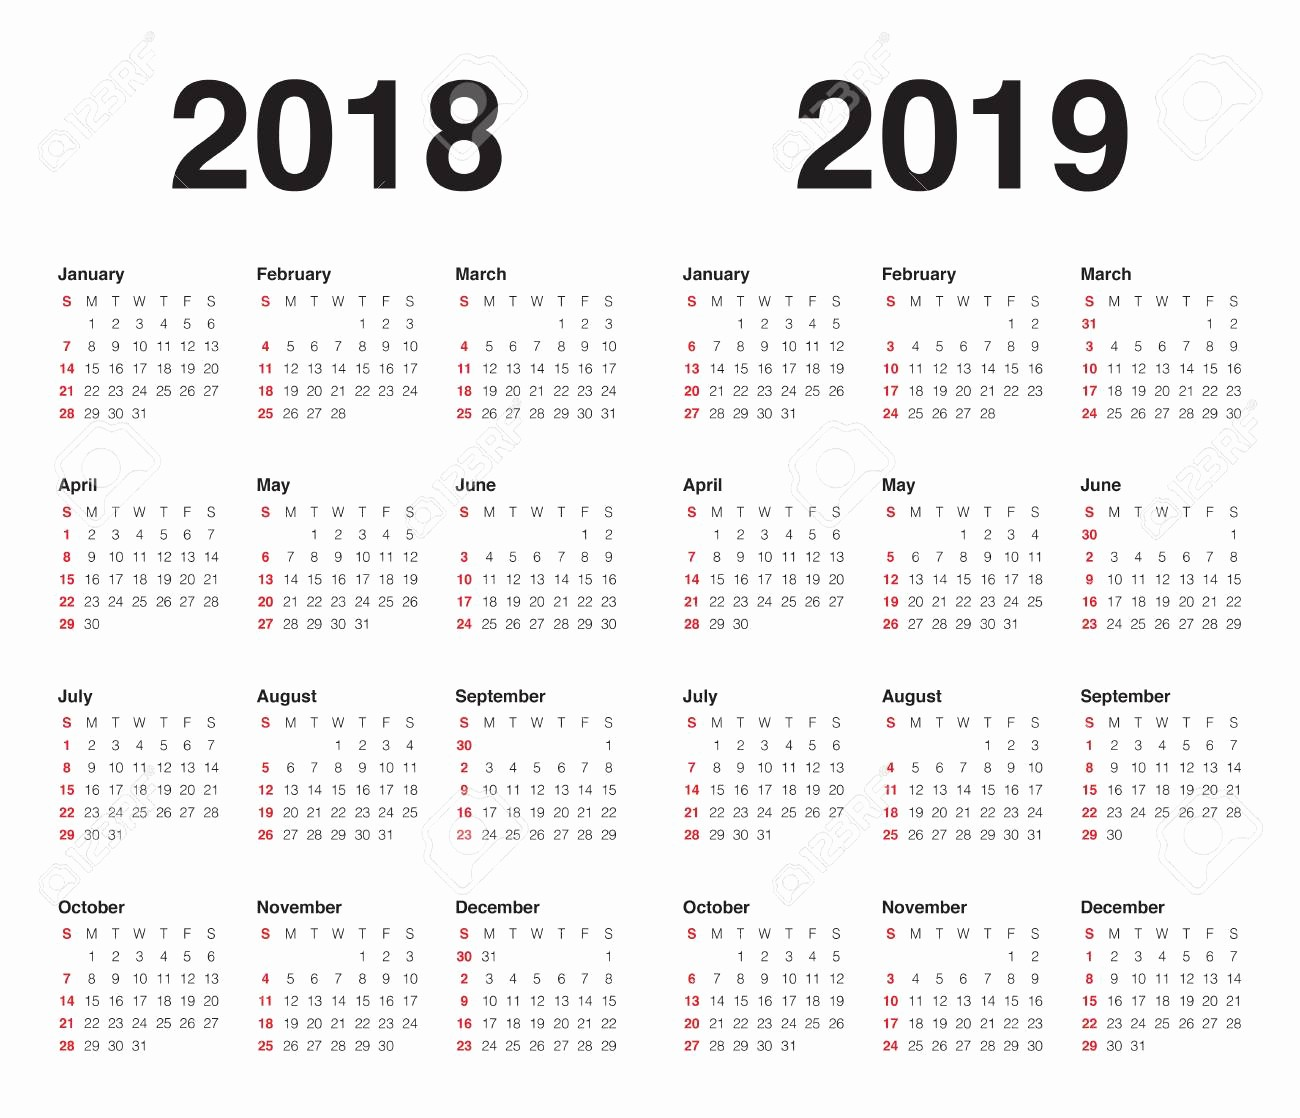 Printable Calendar 2018 and 2019 Best Of Free Calendar for 2018 2019